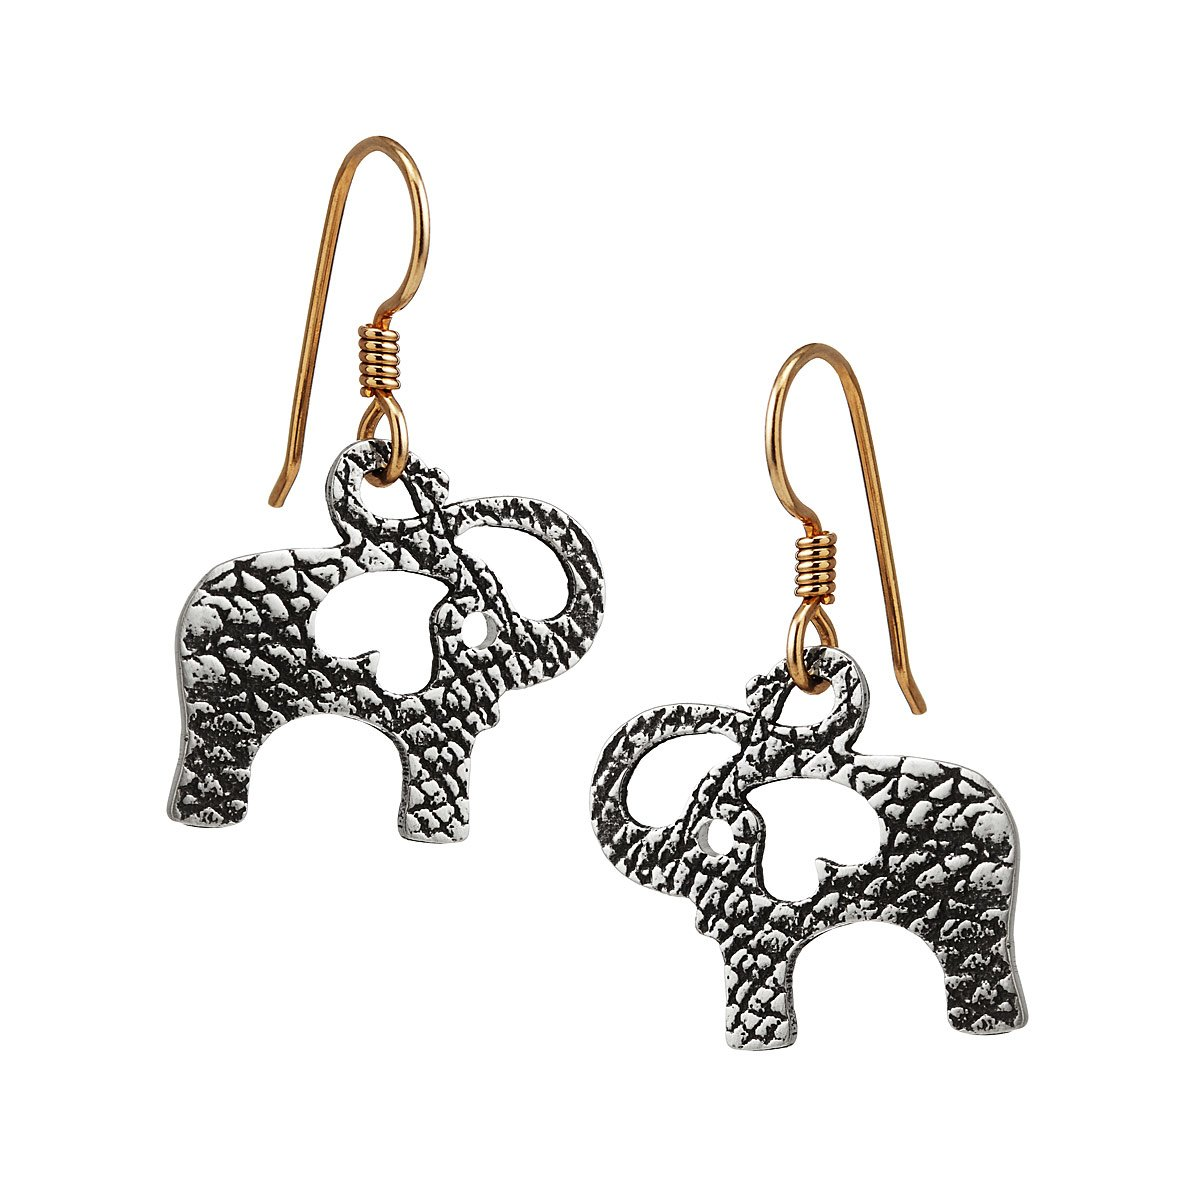 two over filigree free watches collection on earrings adce jewelry gold orders tone shipping drop overstock tailored toscana plated elephant product